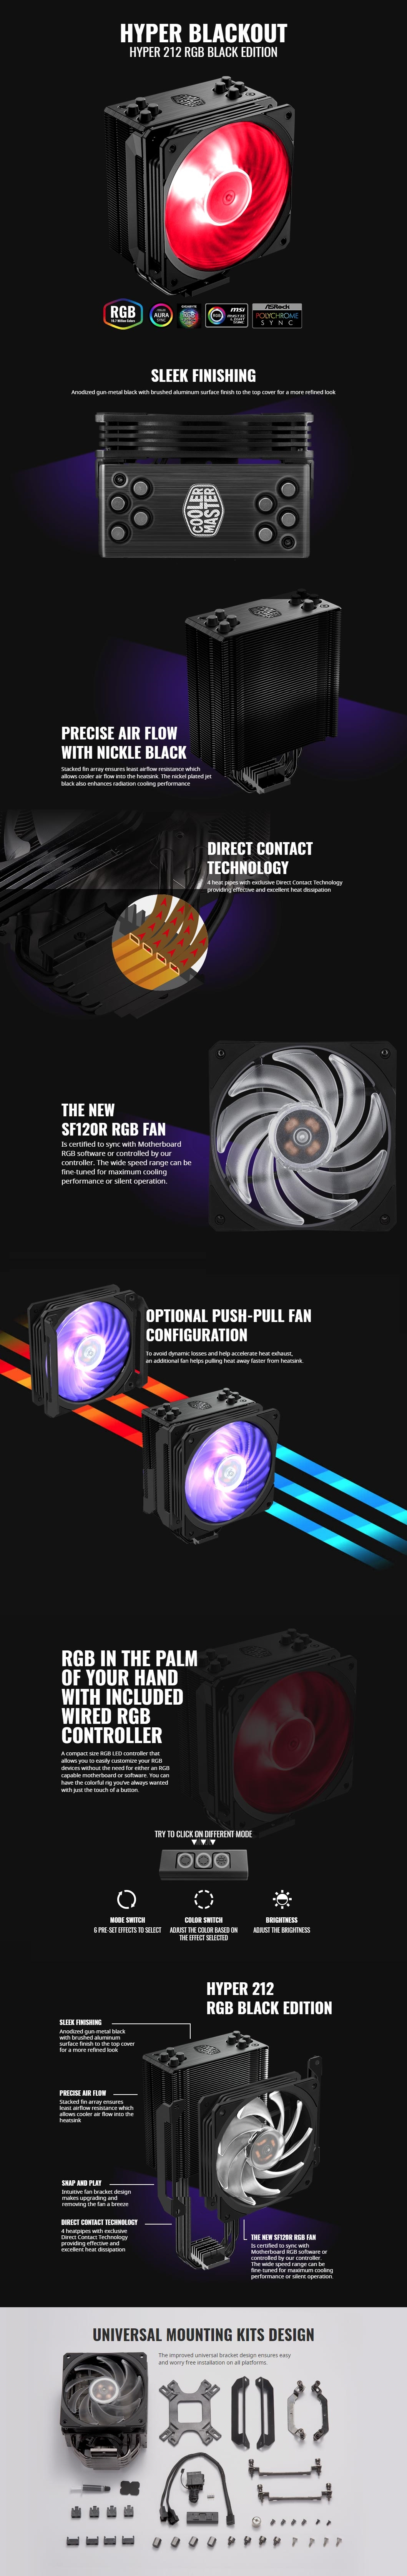 Cooler Master Hyper 212 RGB Black Edition CPU Air Cooler, 4 Direct Contact  Heatpipes, 120mm RGB Fan